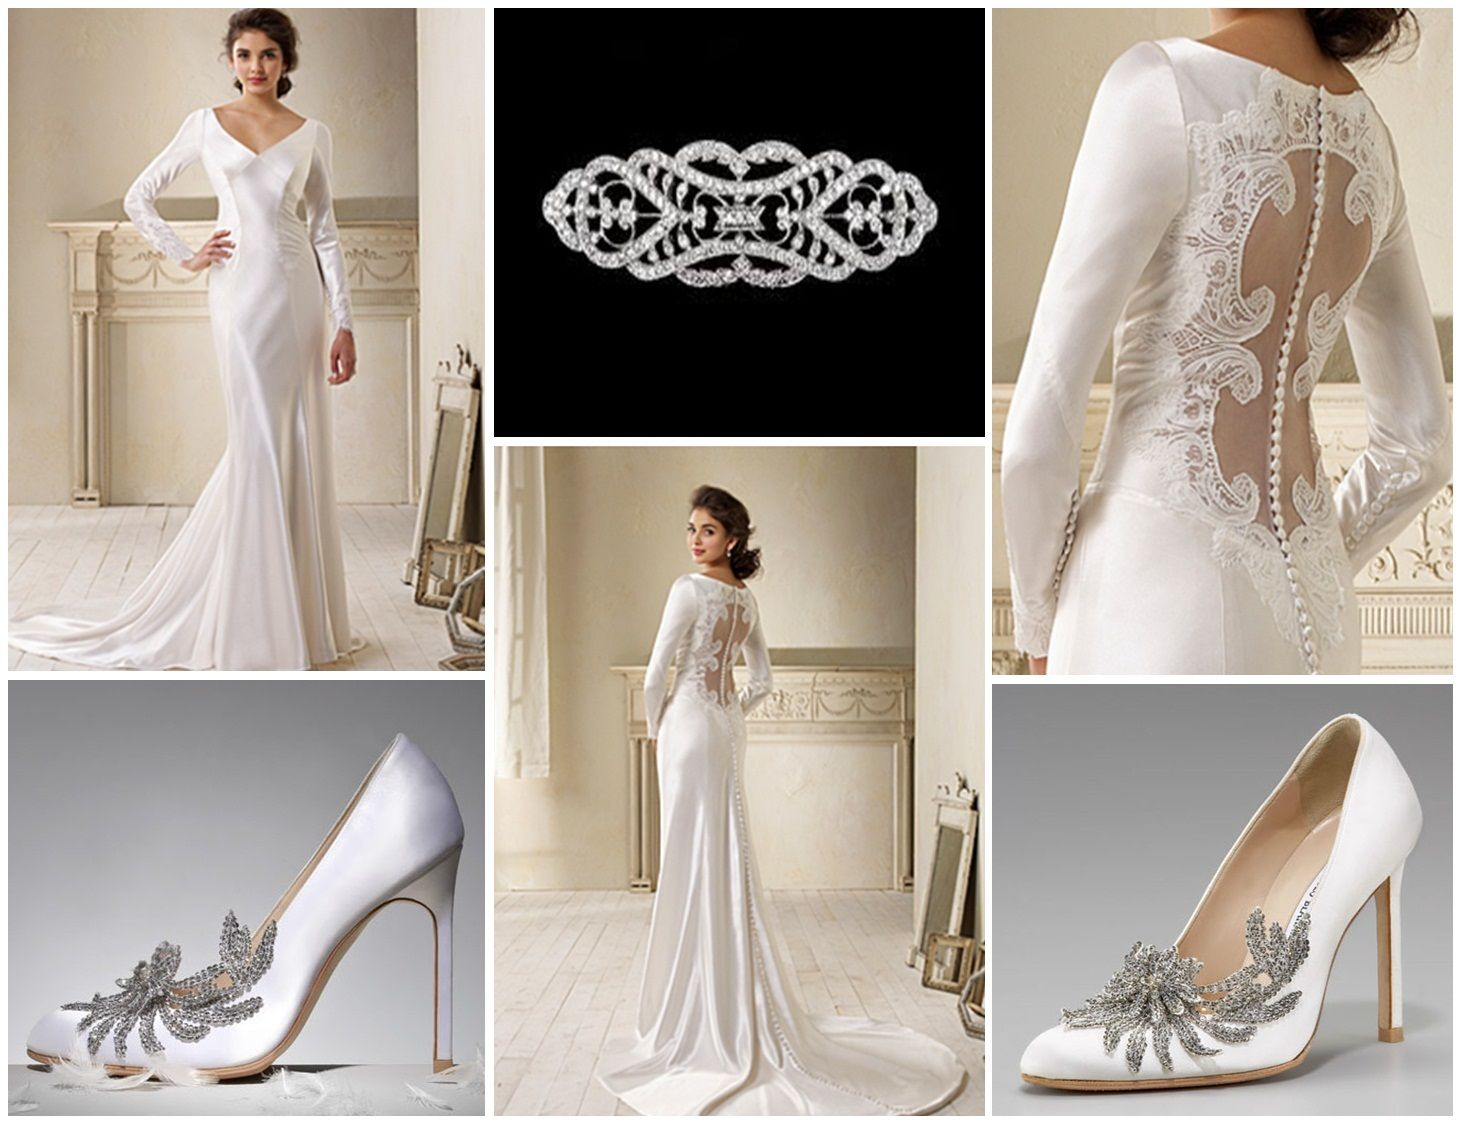 mms & nfs: Bella Swan wedding dress inspired | Twilight Merchandise ...